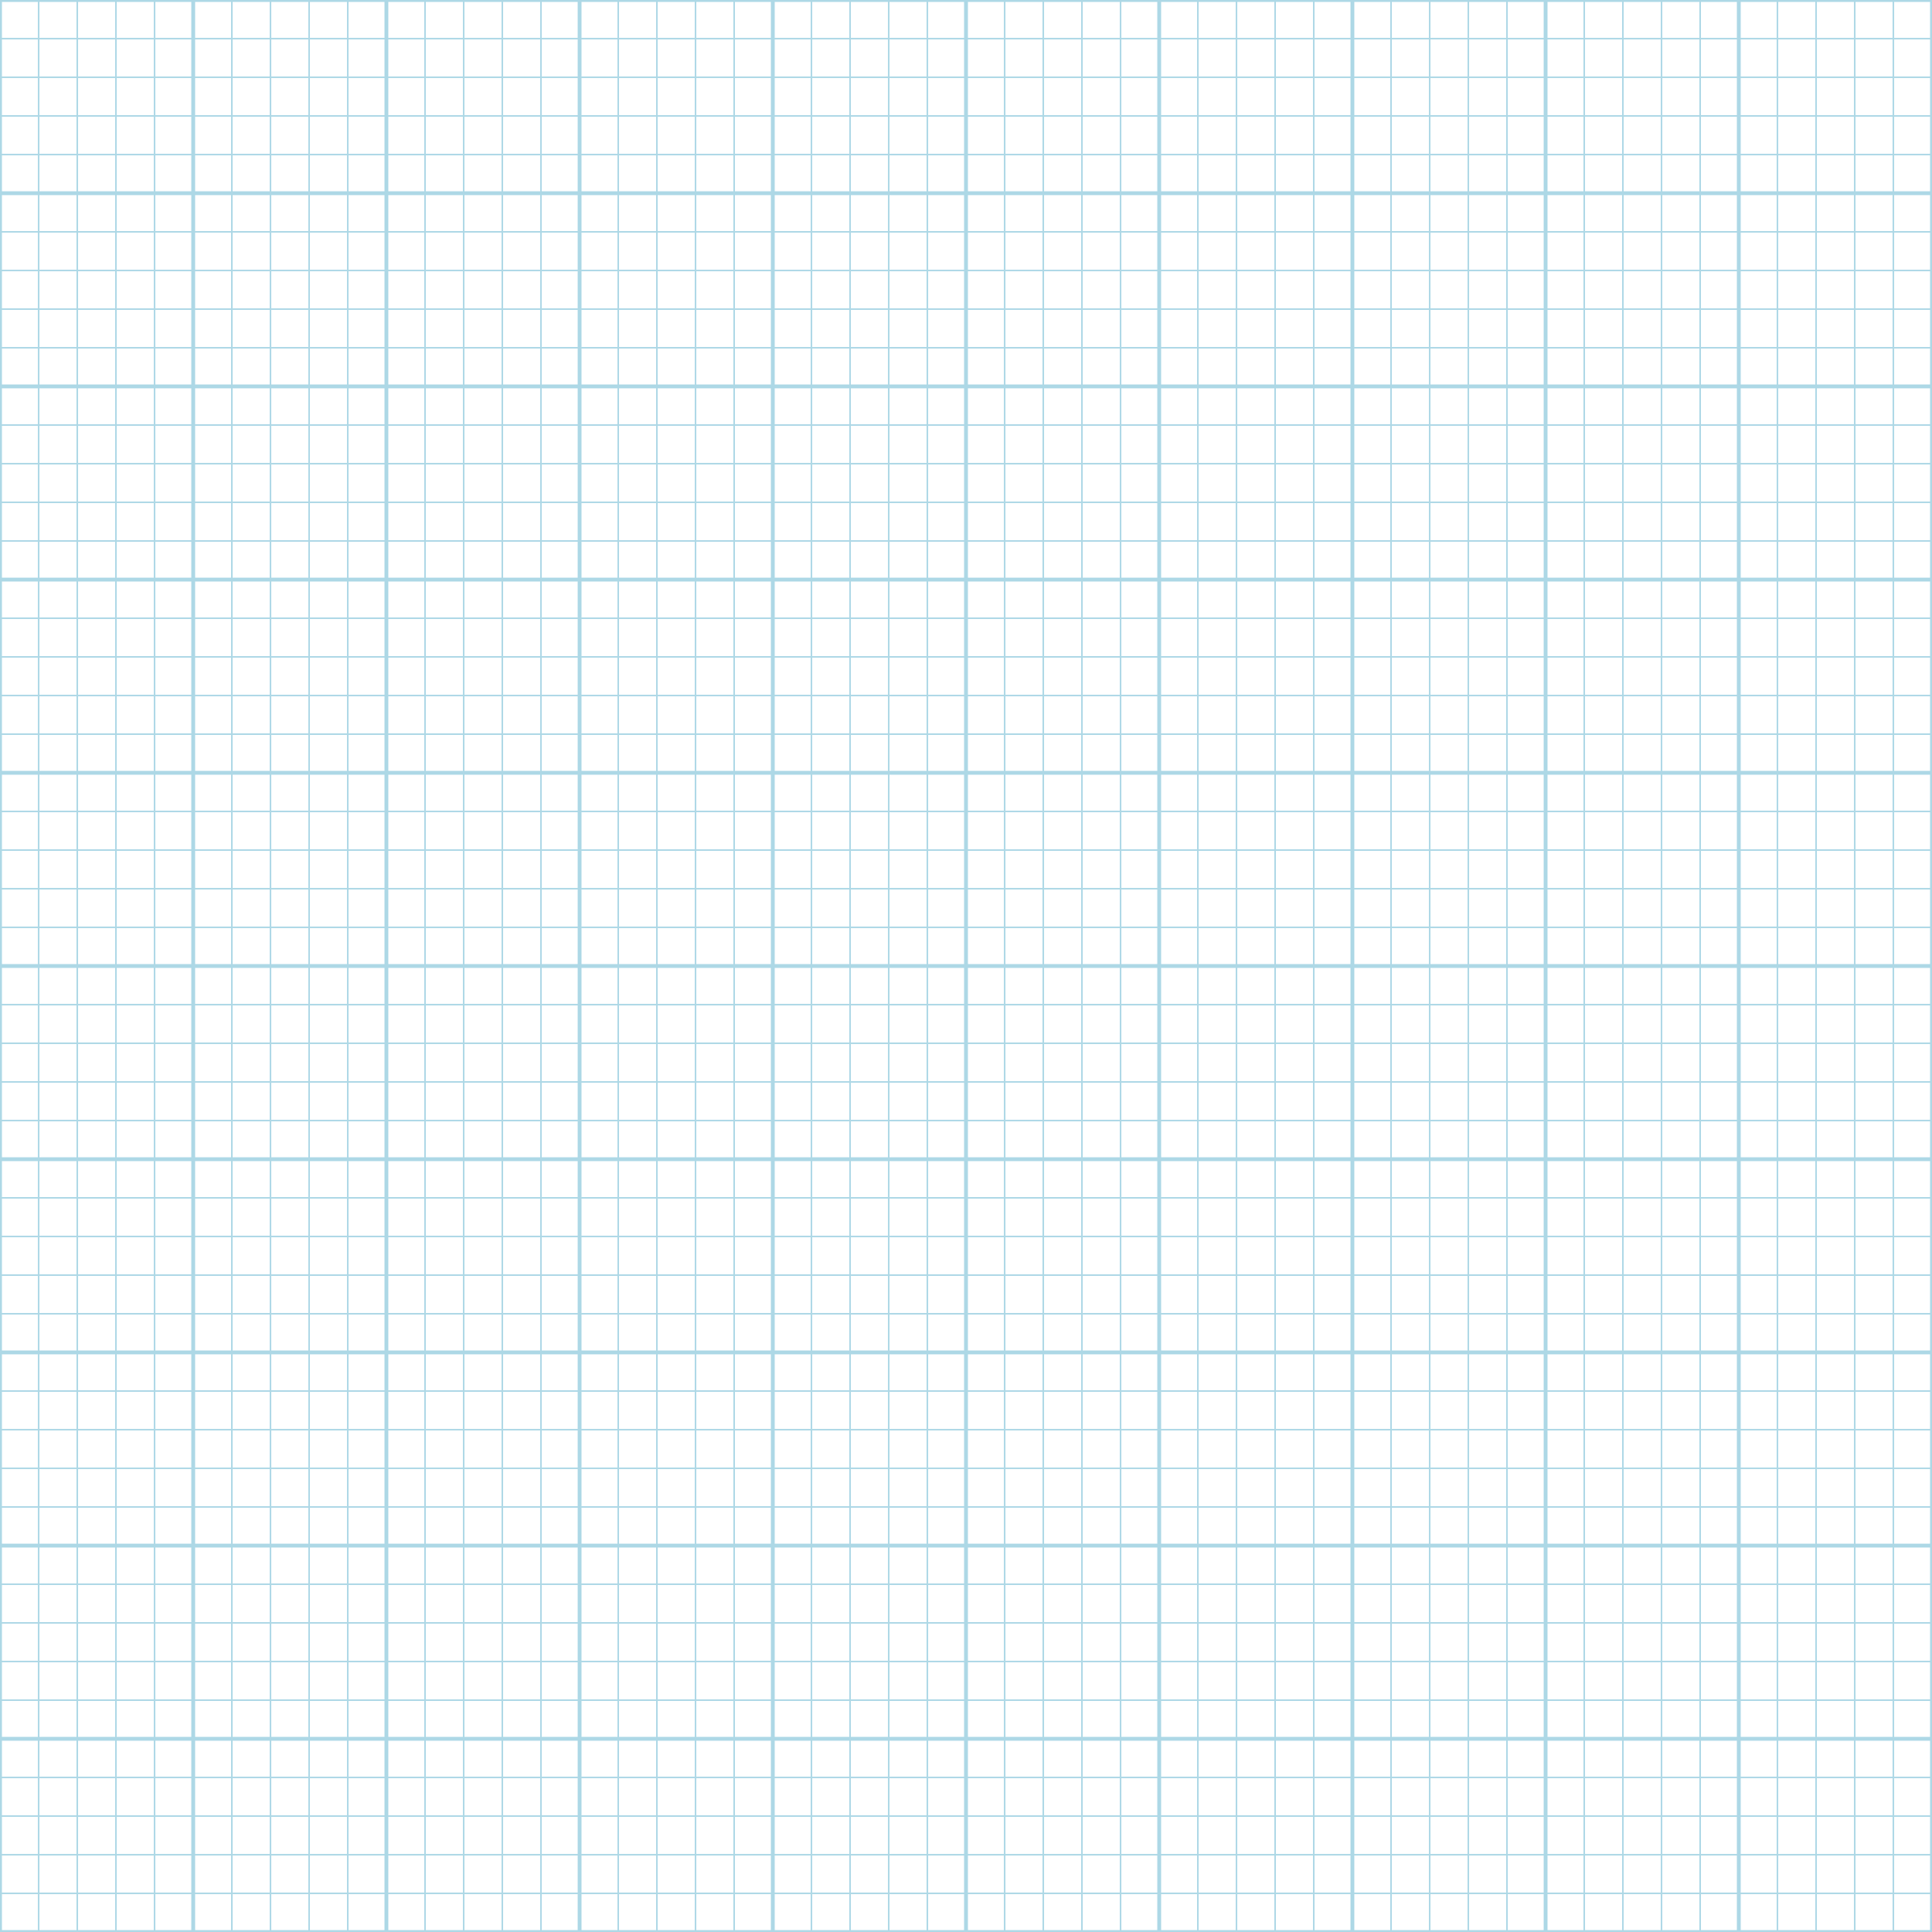 Plain Graph Paper by JayNick